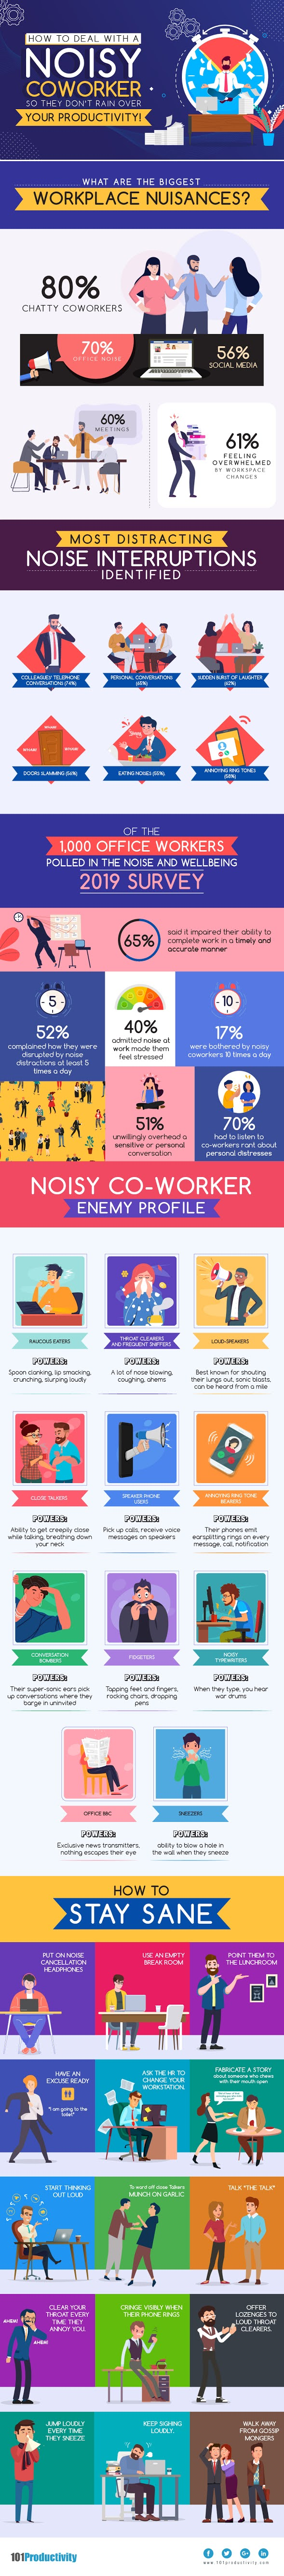 How to Deal with a Noisy Coworker so They Don't Rain Over your Productivity! #infographic #Productivity #infographics #Noisy Coworker